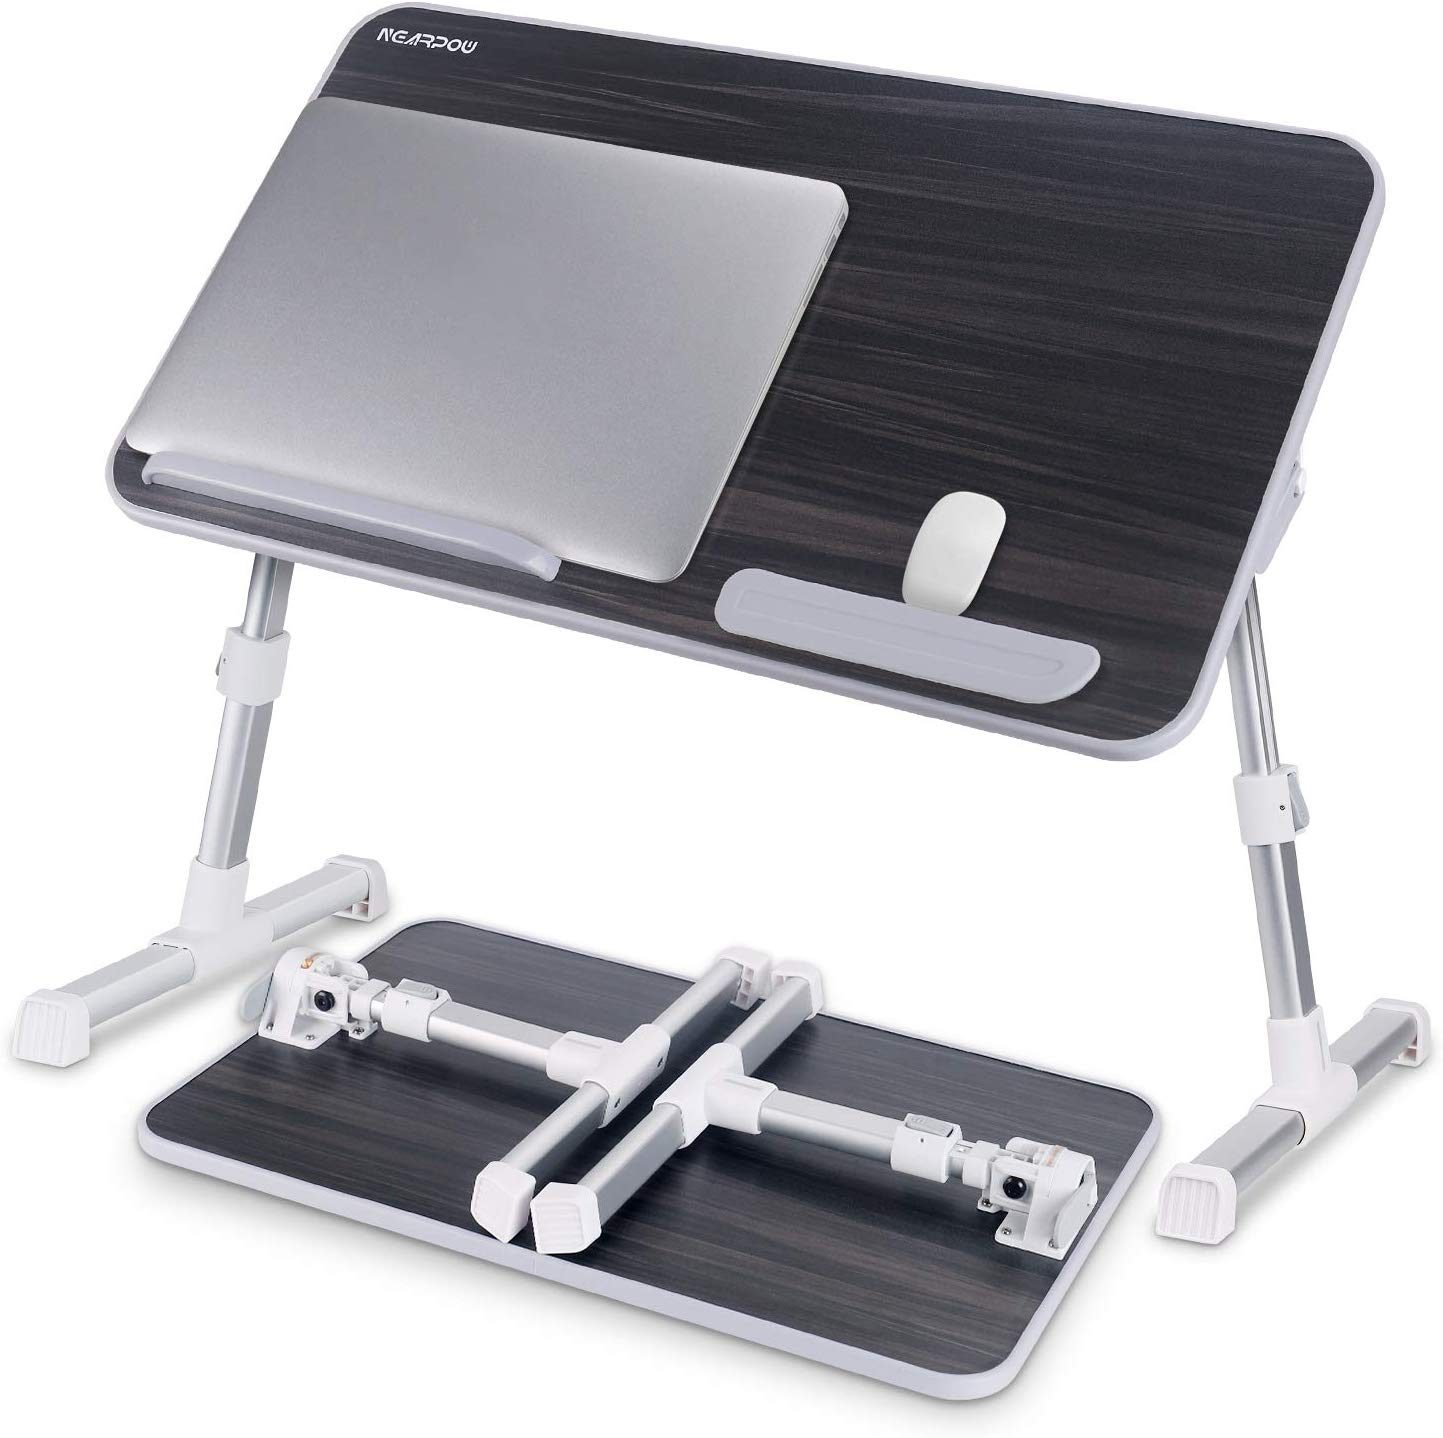 Foldable Sofa Breakfast Tray No Fan Notebook Stand Reading Holder for Couch Floor Home-Neat Adjustable Laptop Table Portable Standing Bed Desk